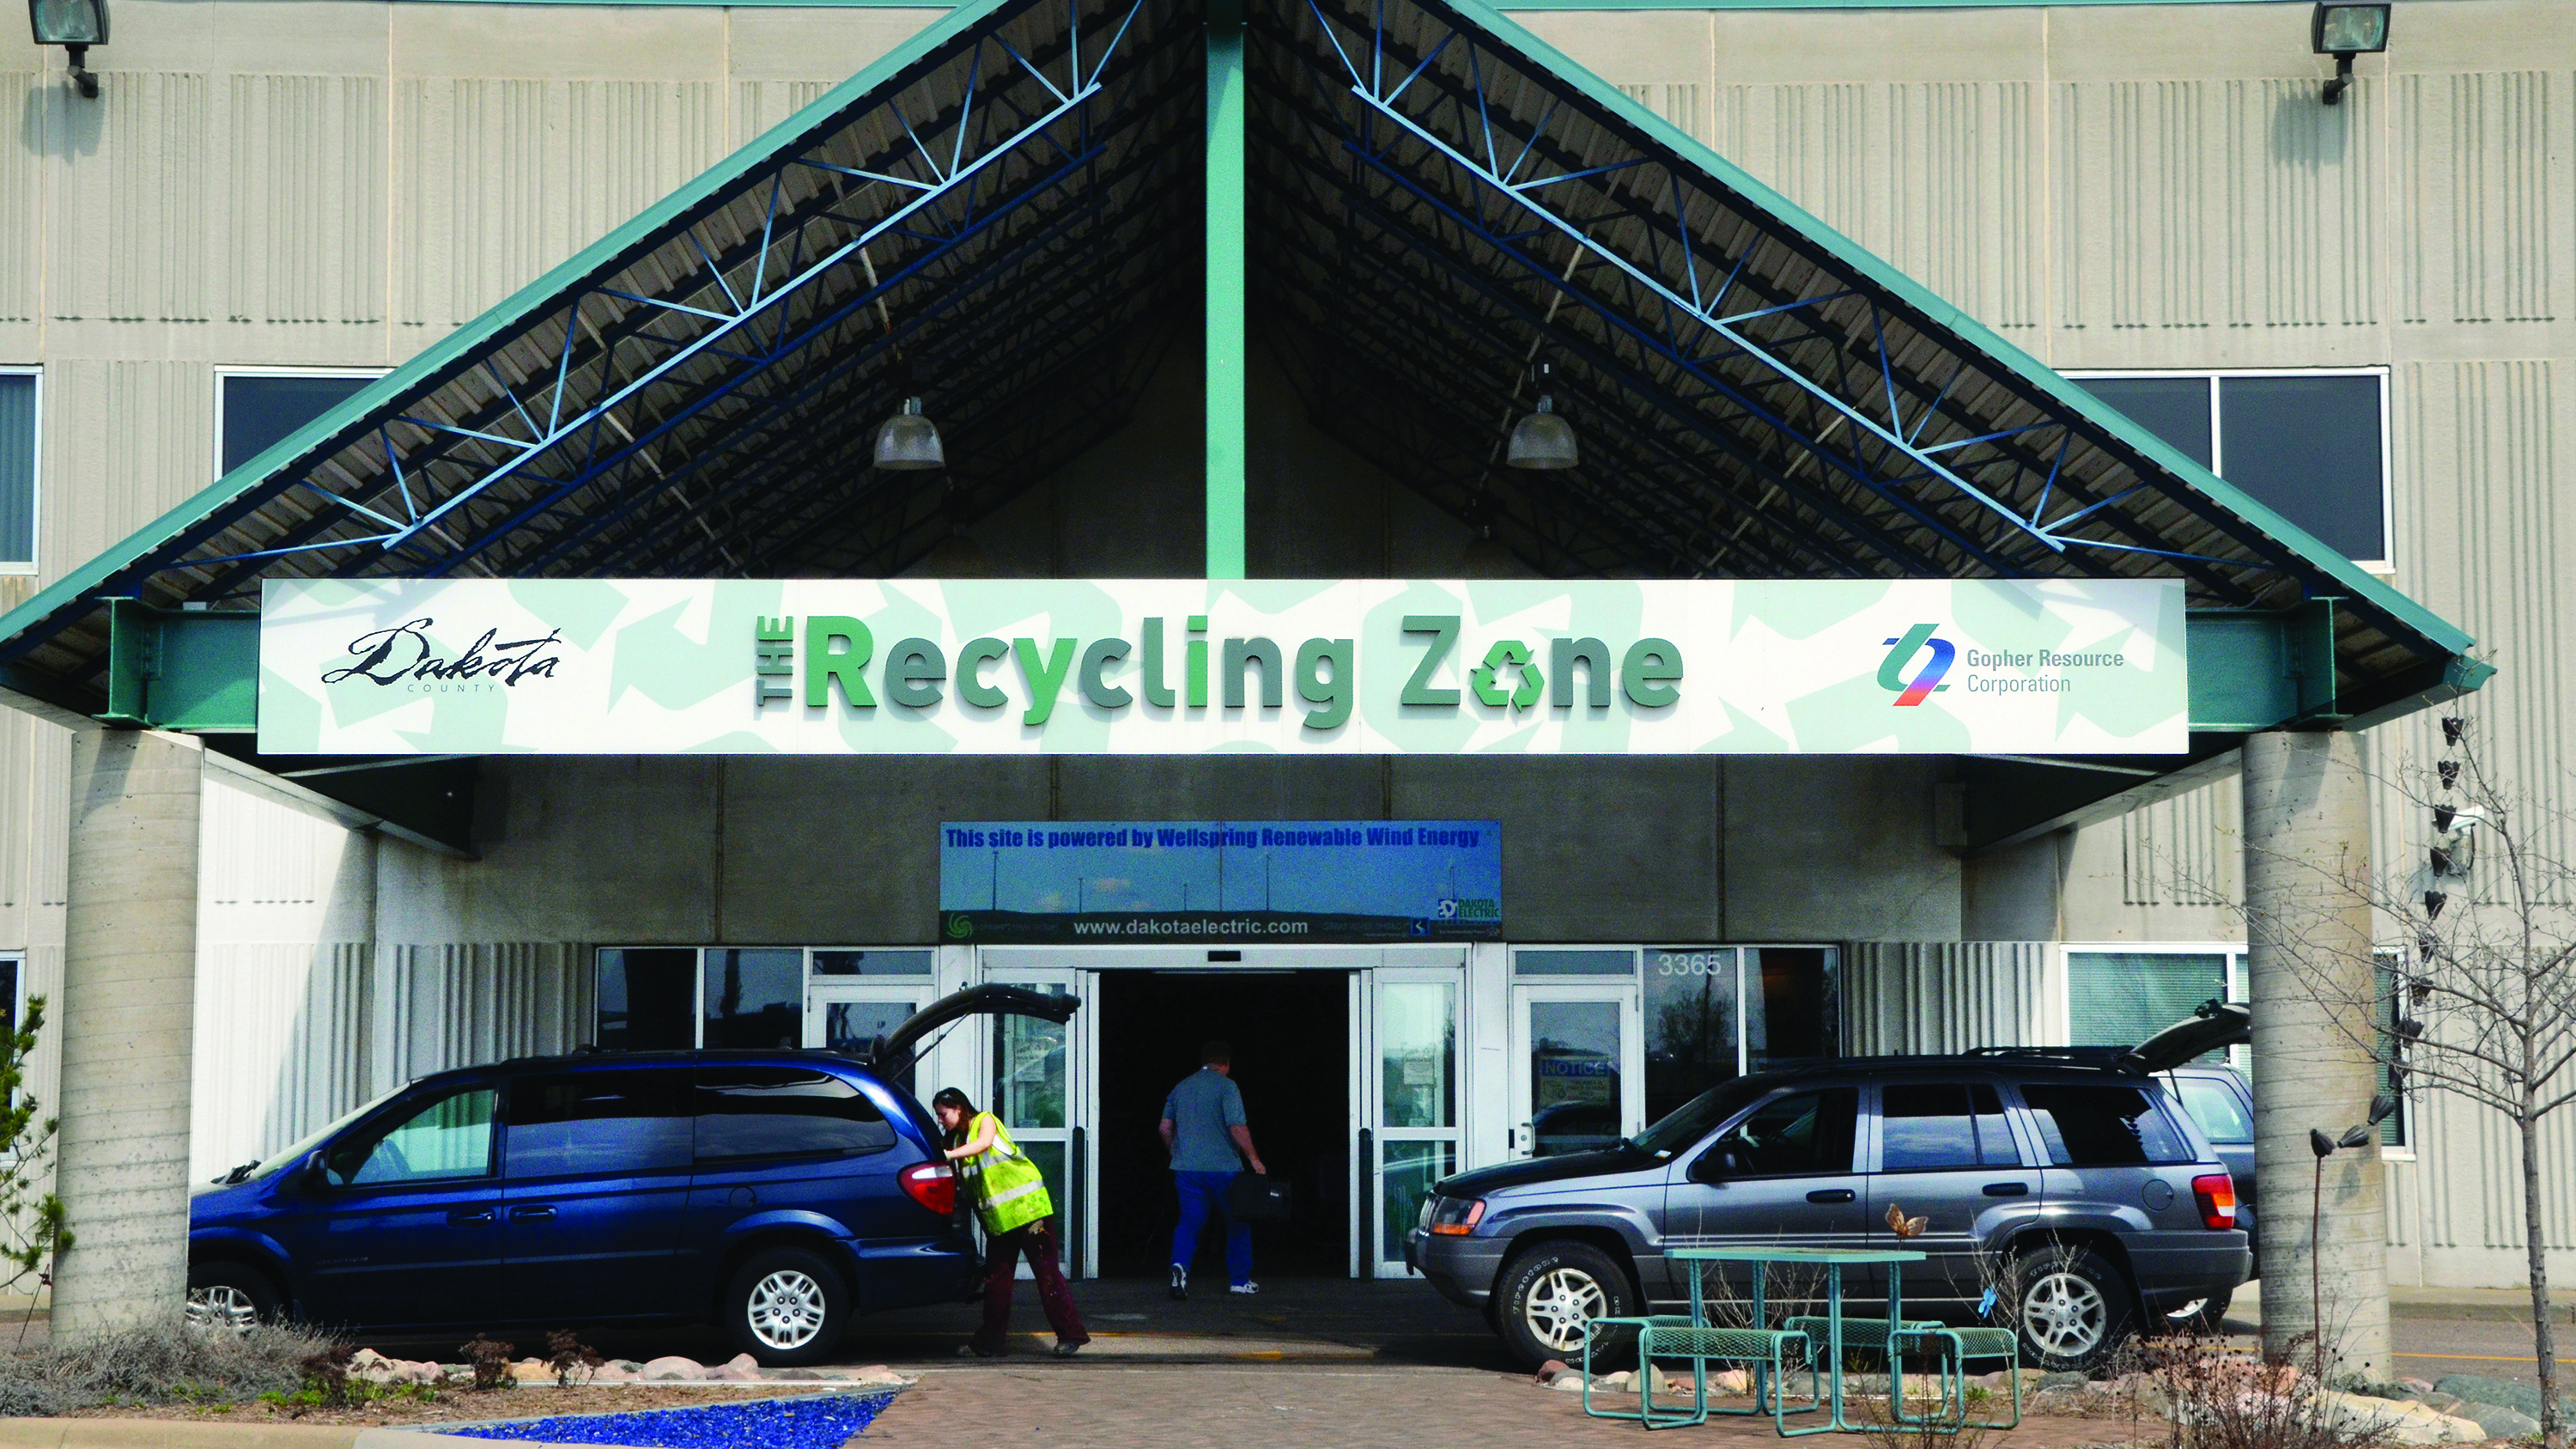 Collection Site Spotlight: The Recycling Zone